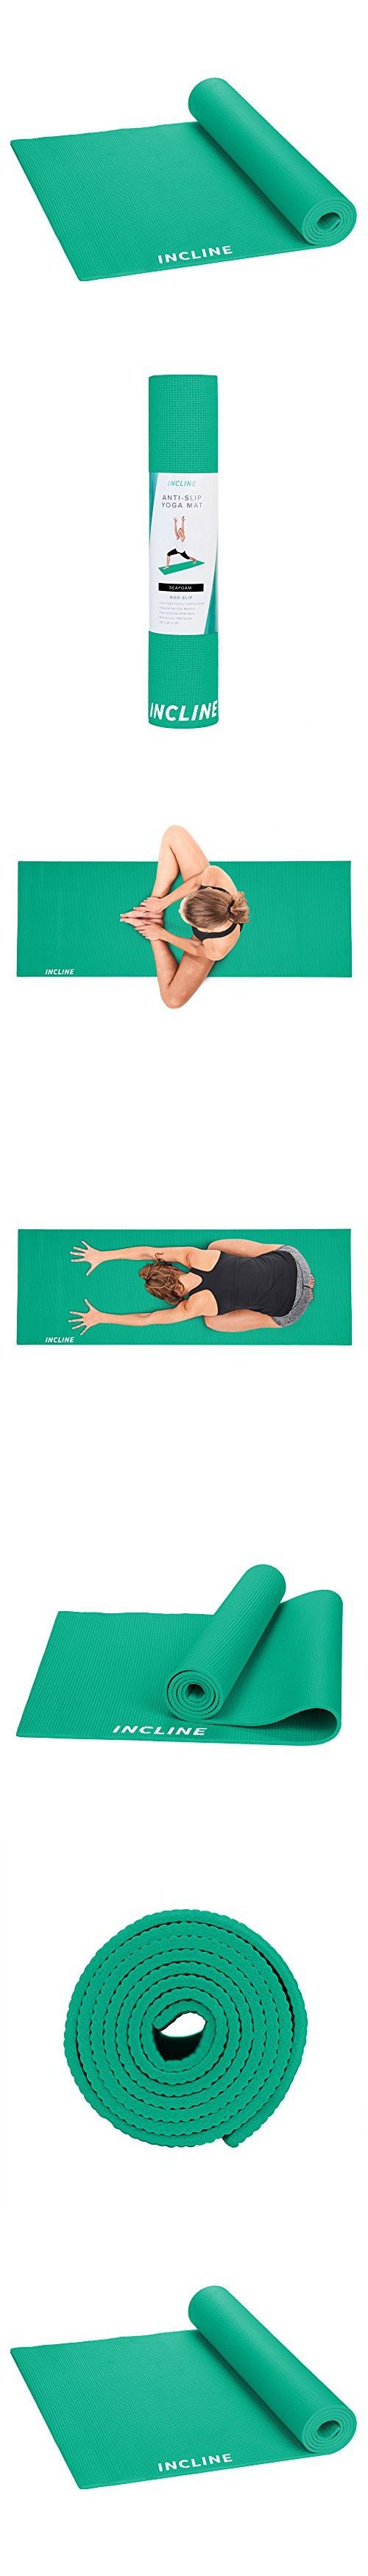 Incline Fit High Density Slip Resistant Yoga Mat Seafoam